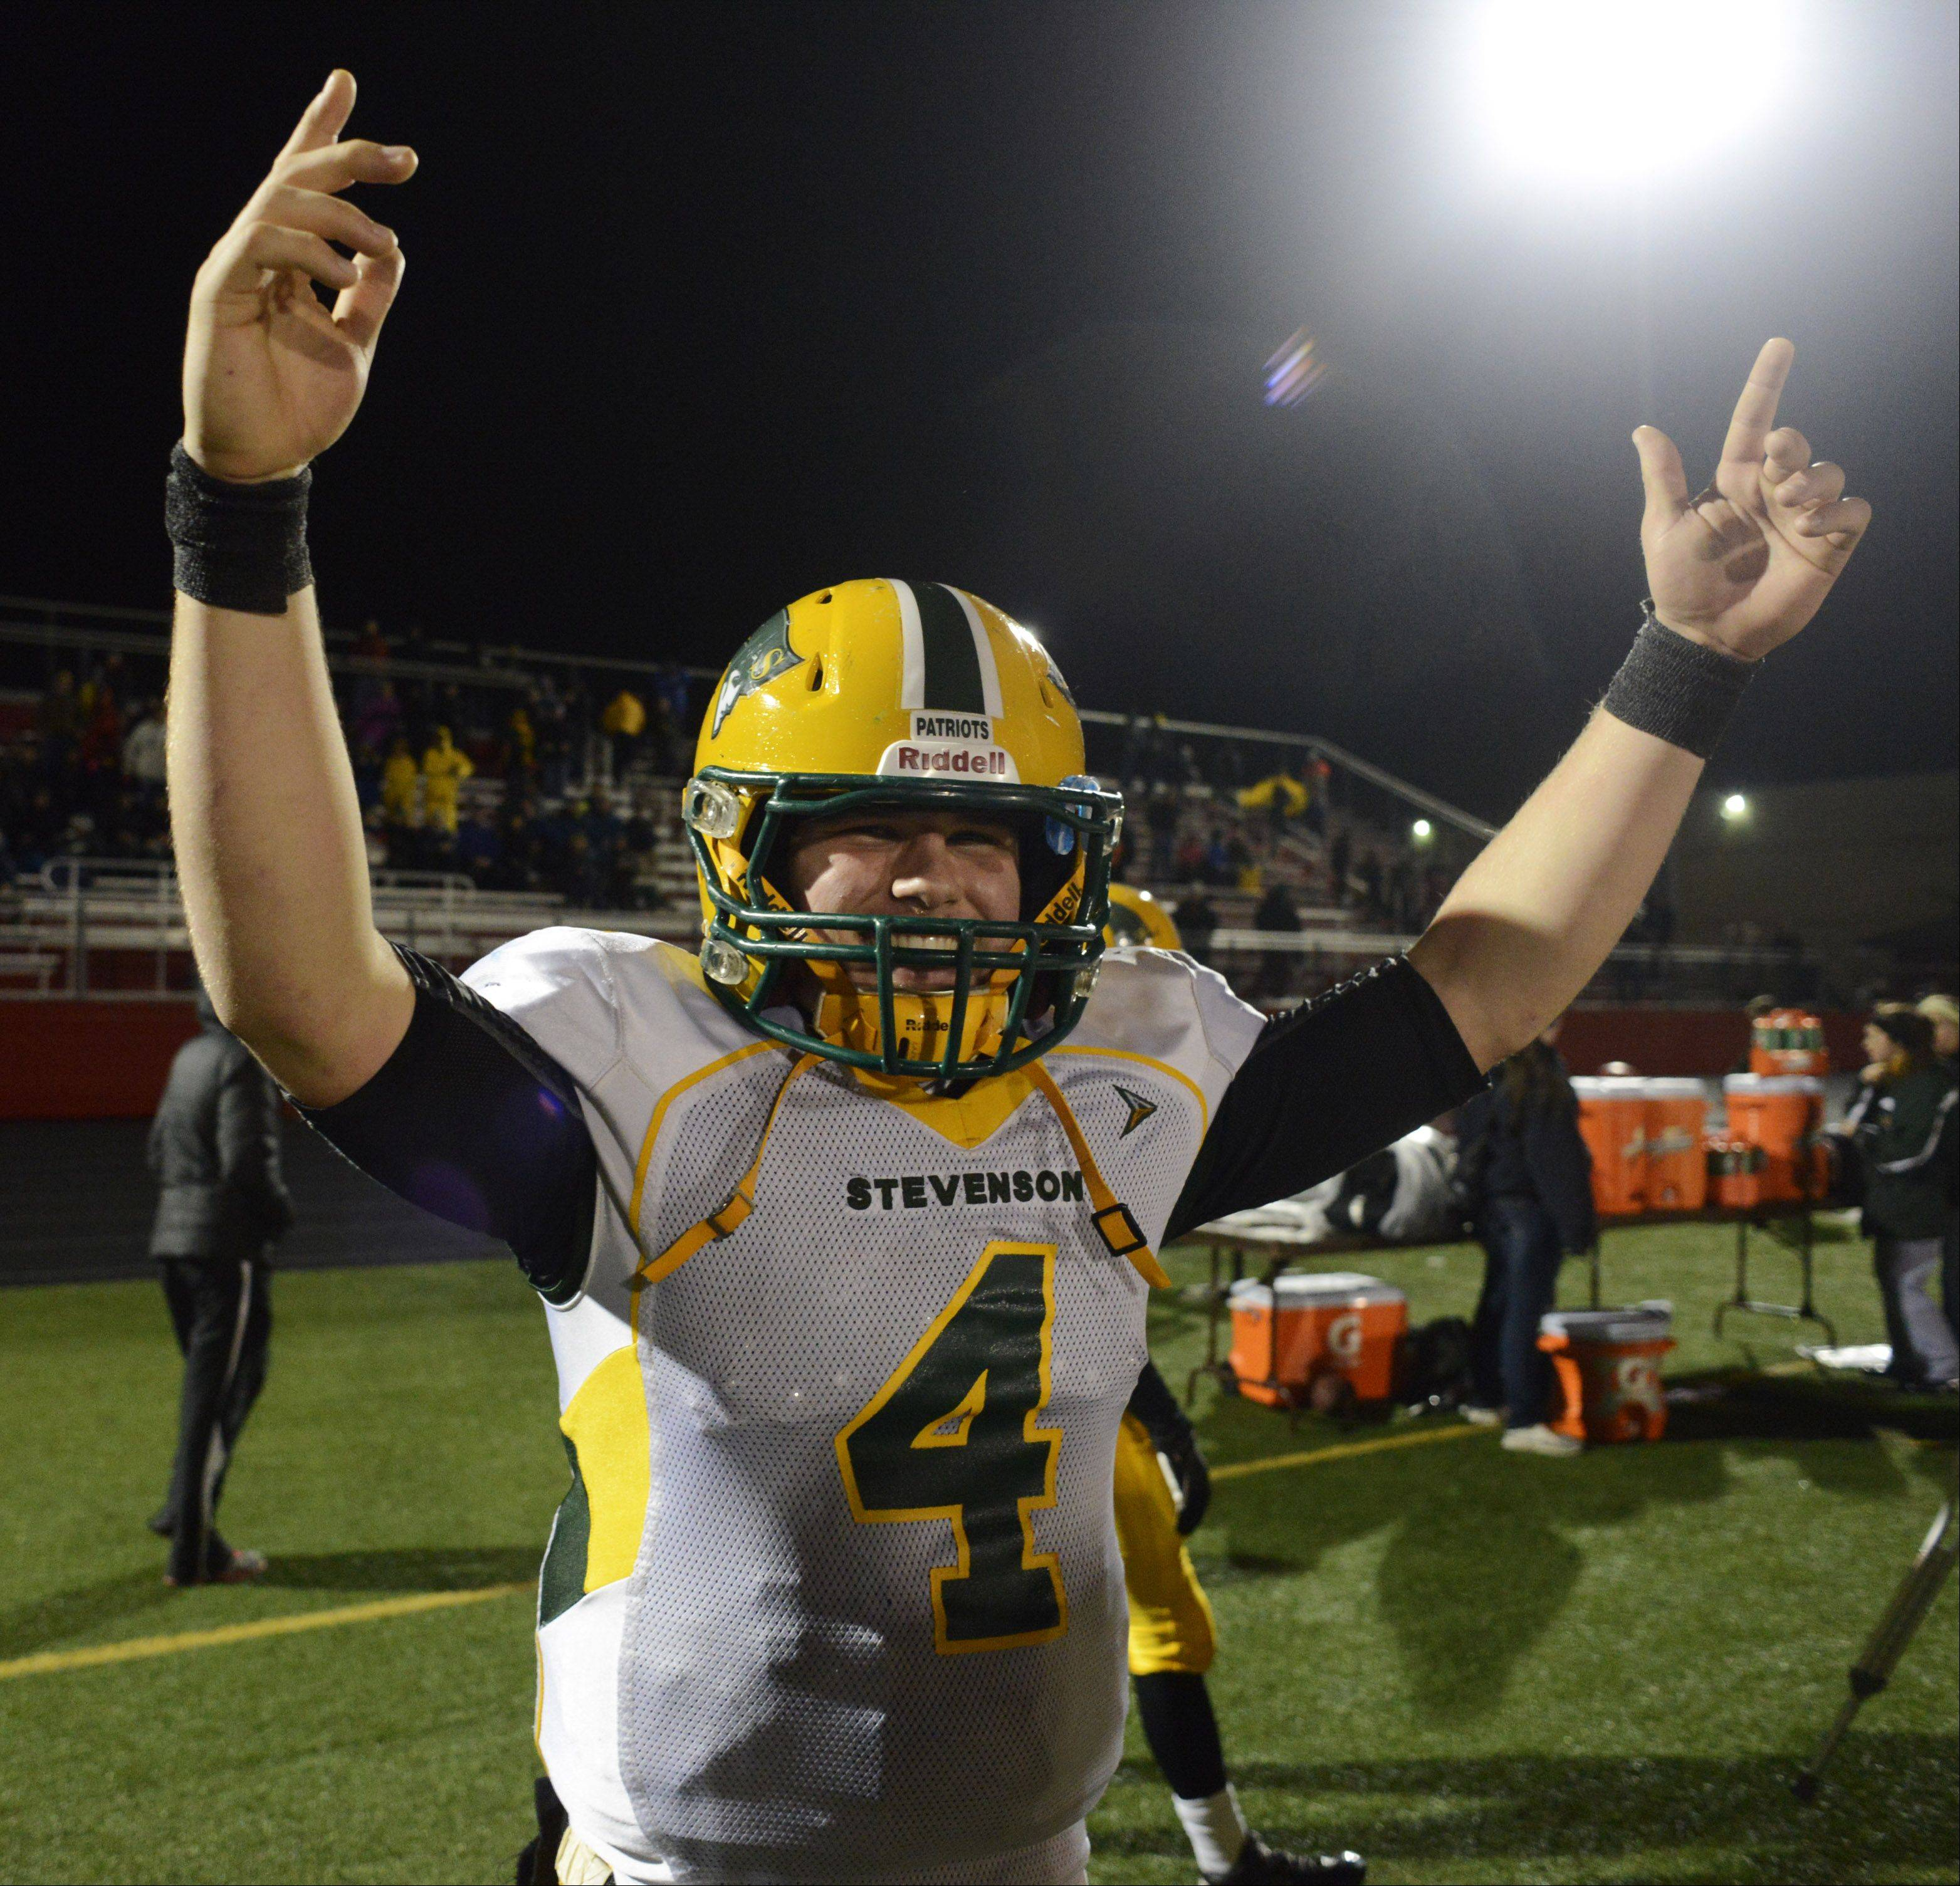 Stevenson quarterback Willie Bourbon celebrates as the clock winds down in the closing seconds of Saturday�s 14-0 victory over Barrington.